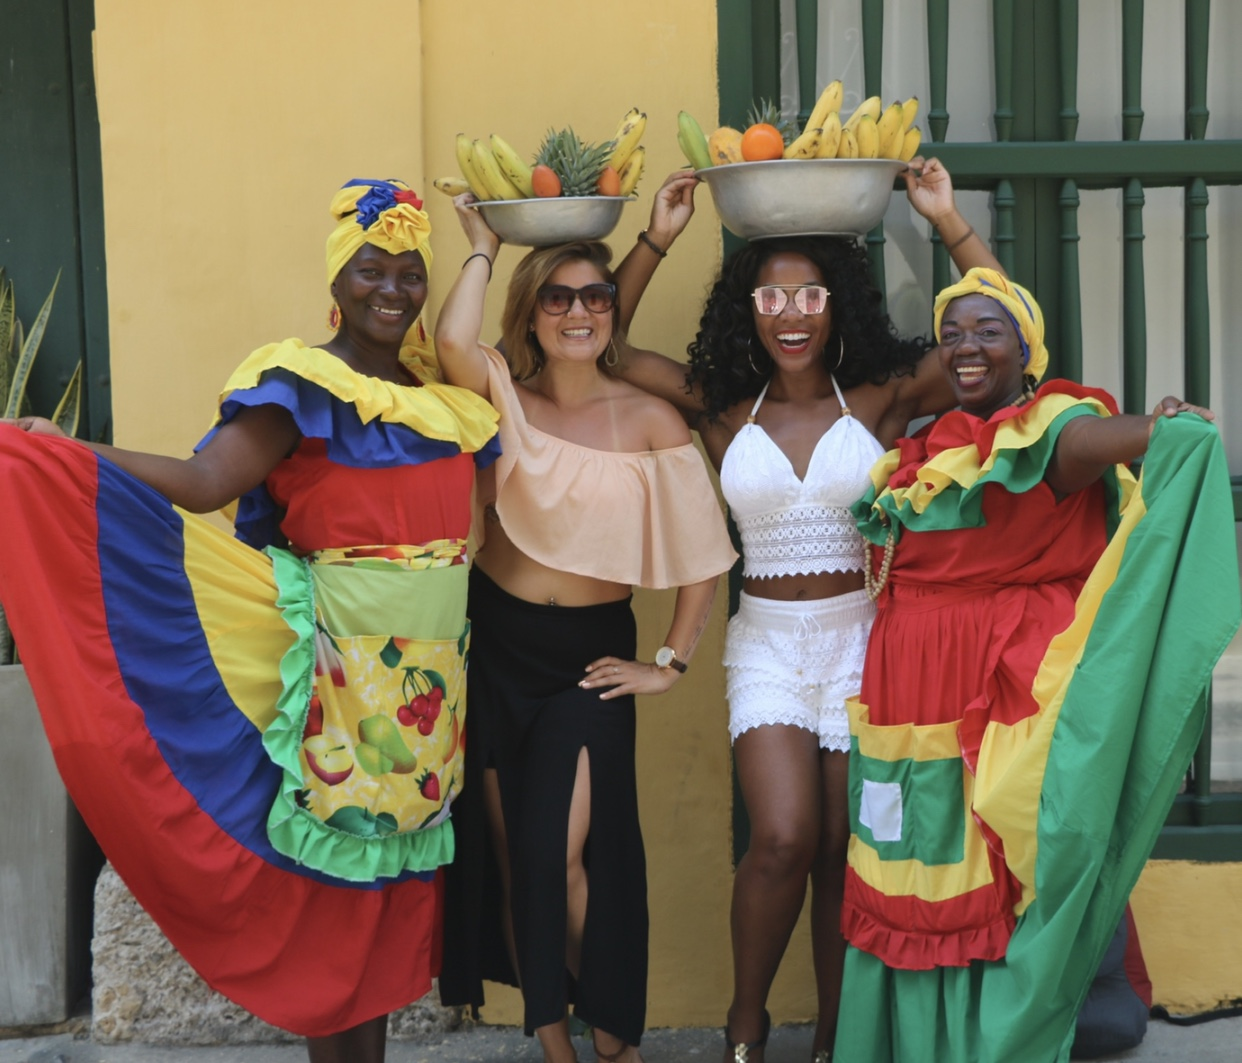 Having unapologetic fun, while remaining healthy in Colombia!